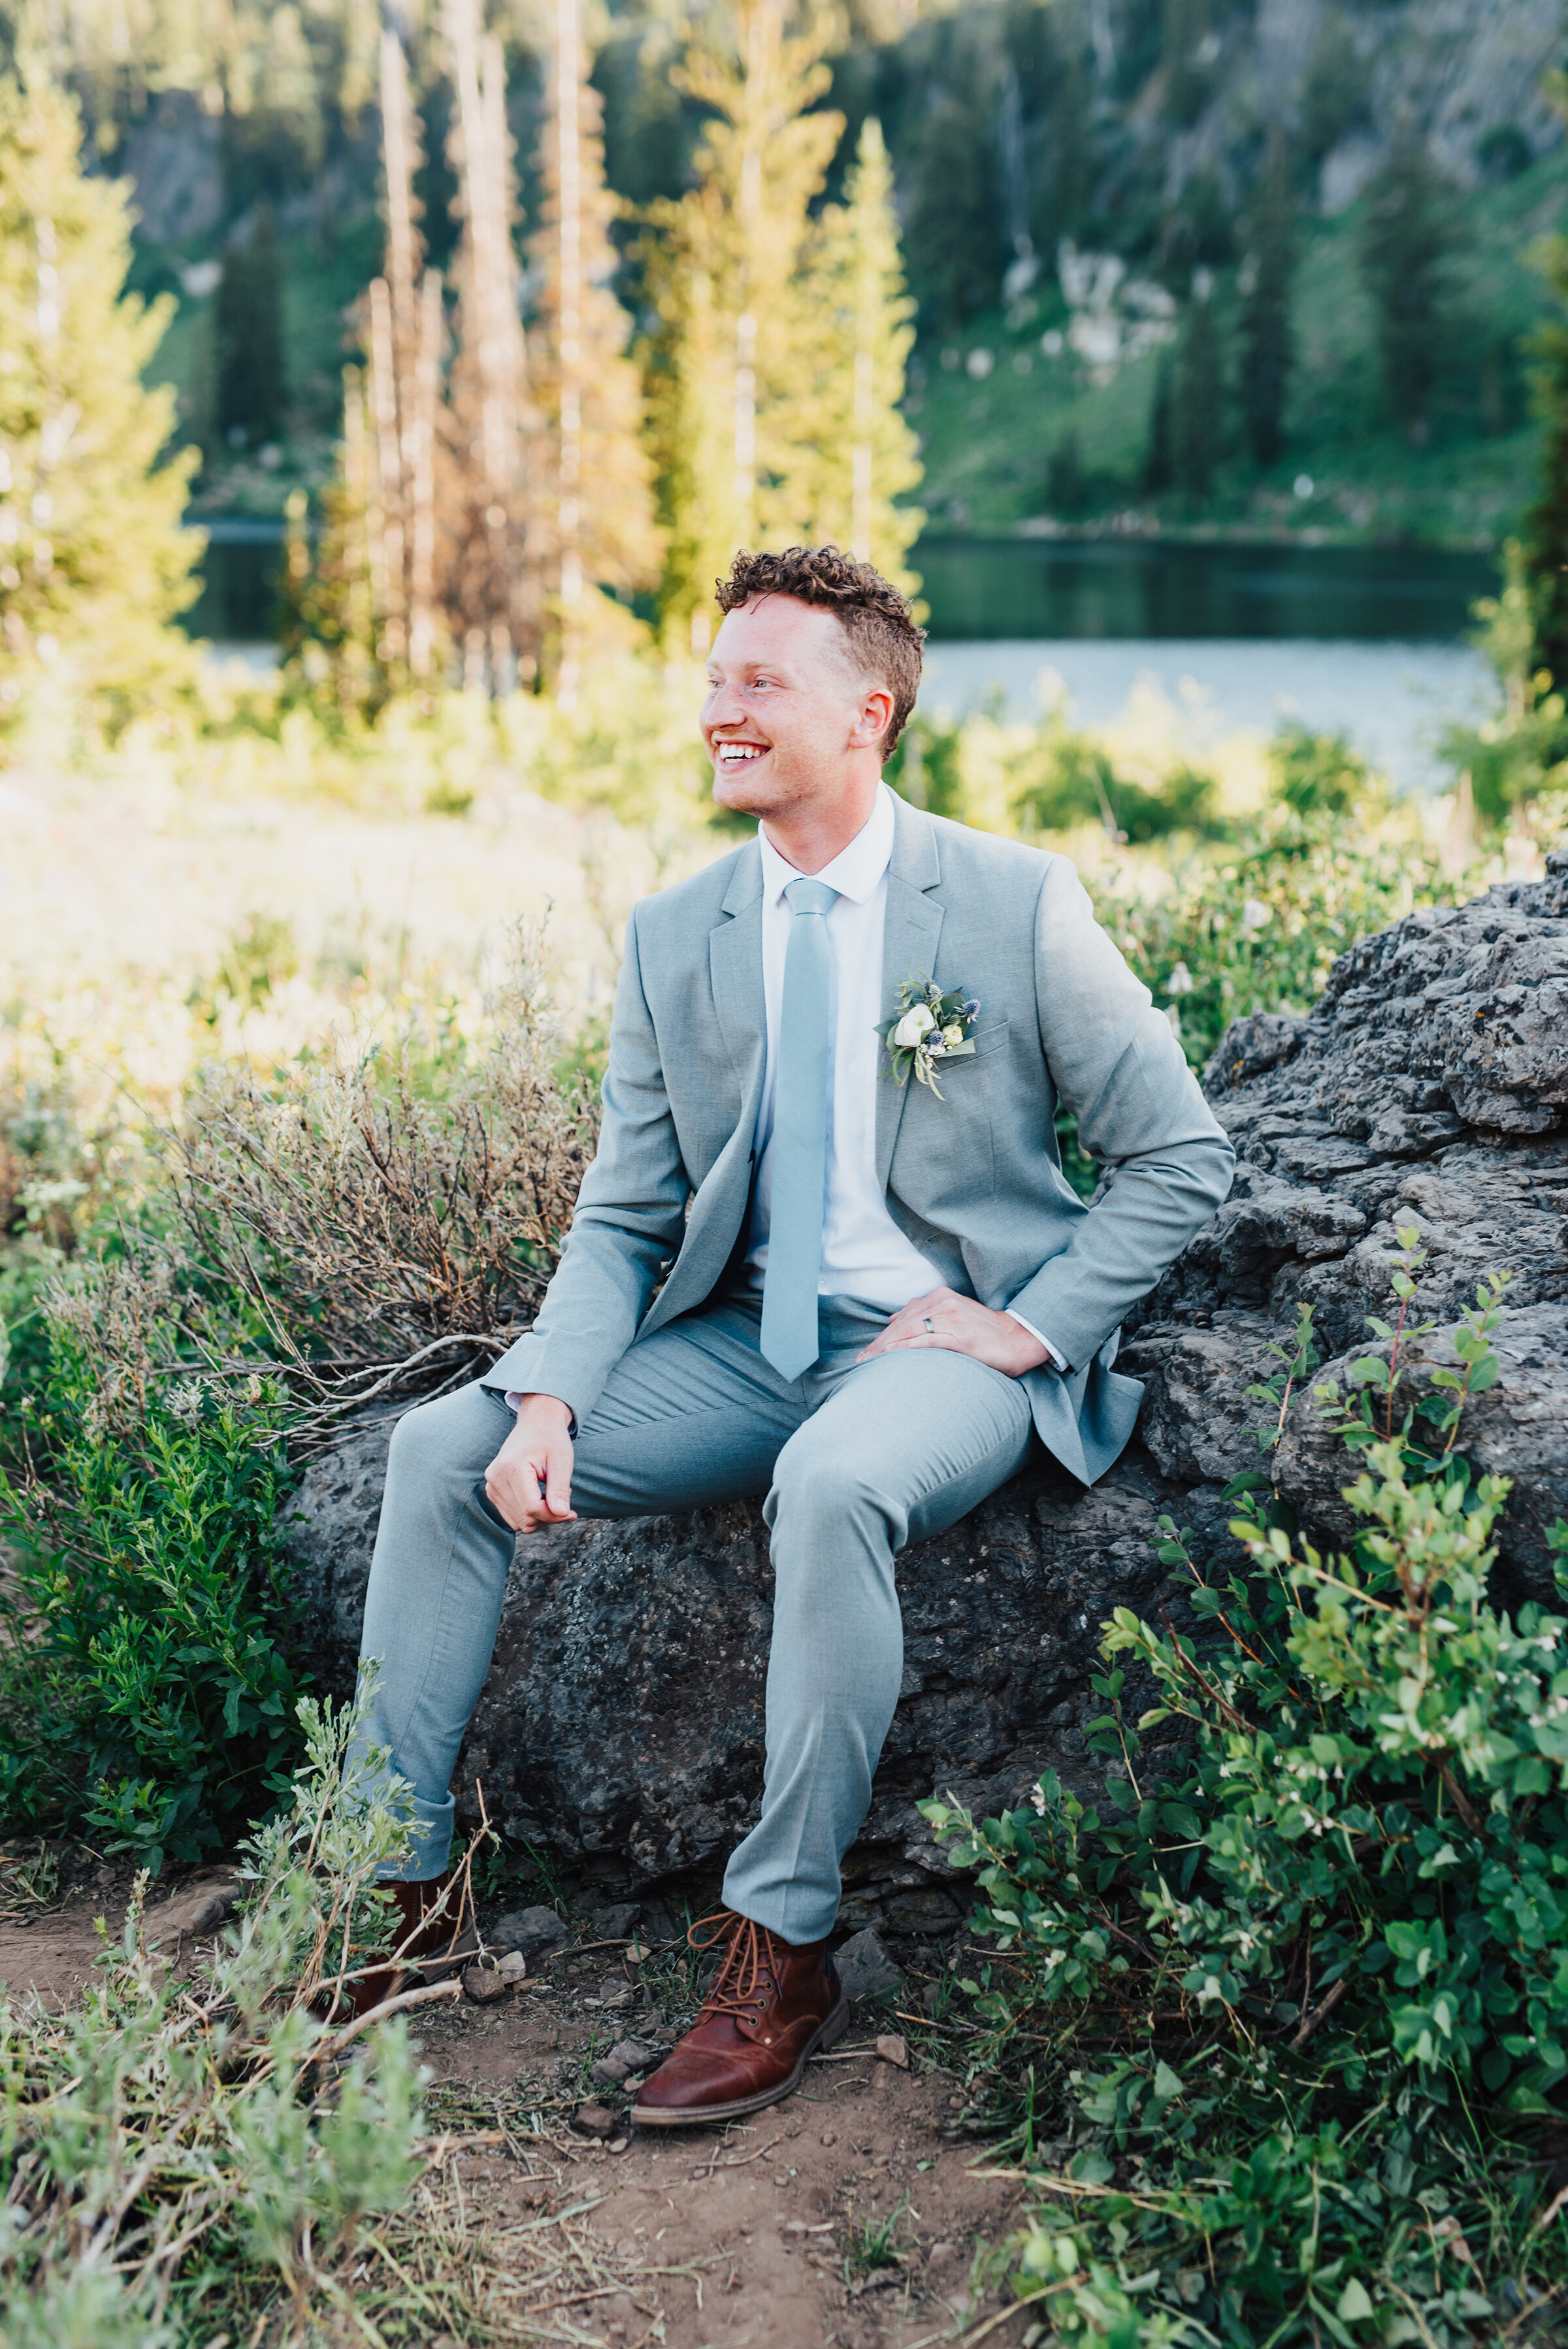 Dapper groom in grey suit wearing a handcrafted boutonnière during this lovely bridal session up Logan canyon. Kristi Alyse photography Logan Utah wedding photographer forest nature dreamy formals Logan canyon Tony Grove scenic bridals Northern Utah photographer Utah brides bride and groom Cache Valley #kristialysephotography #loganutahphotographer #tonygrove #logancanyon #utahweddingphotographer #bridals #formals #wildflowers #northernutah #utahbrides